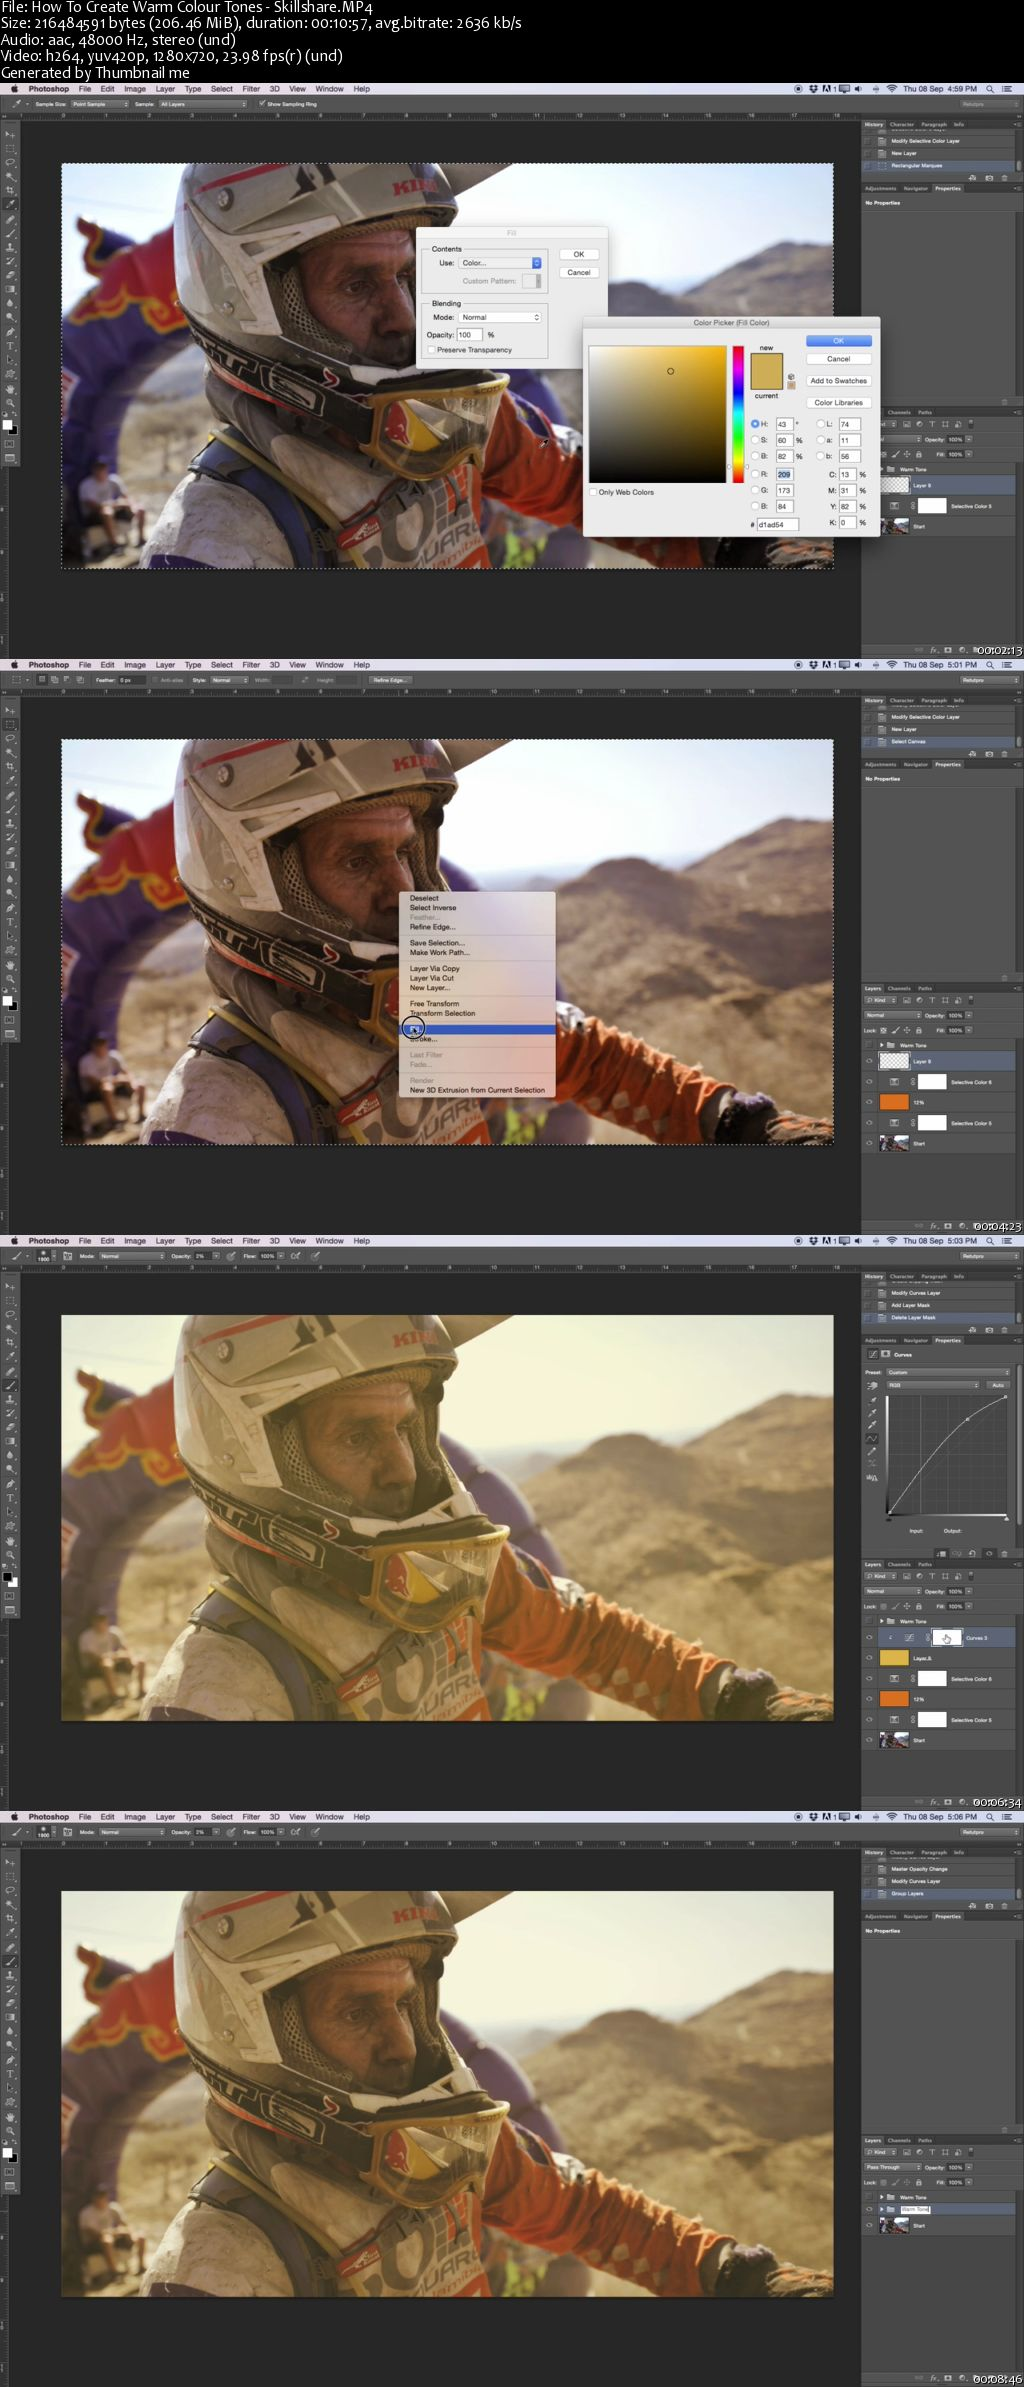 How To Create Warm Colour Tones in Photoshop